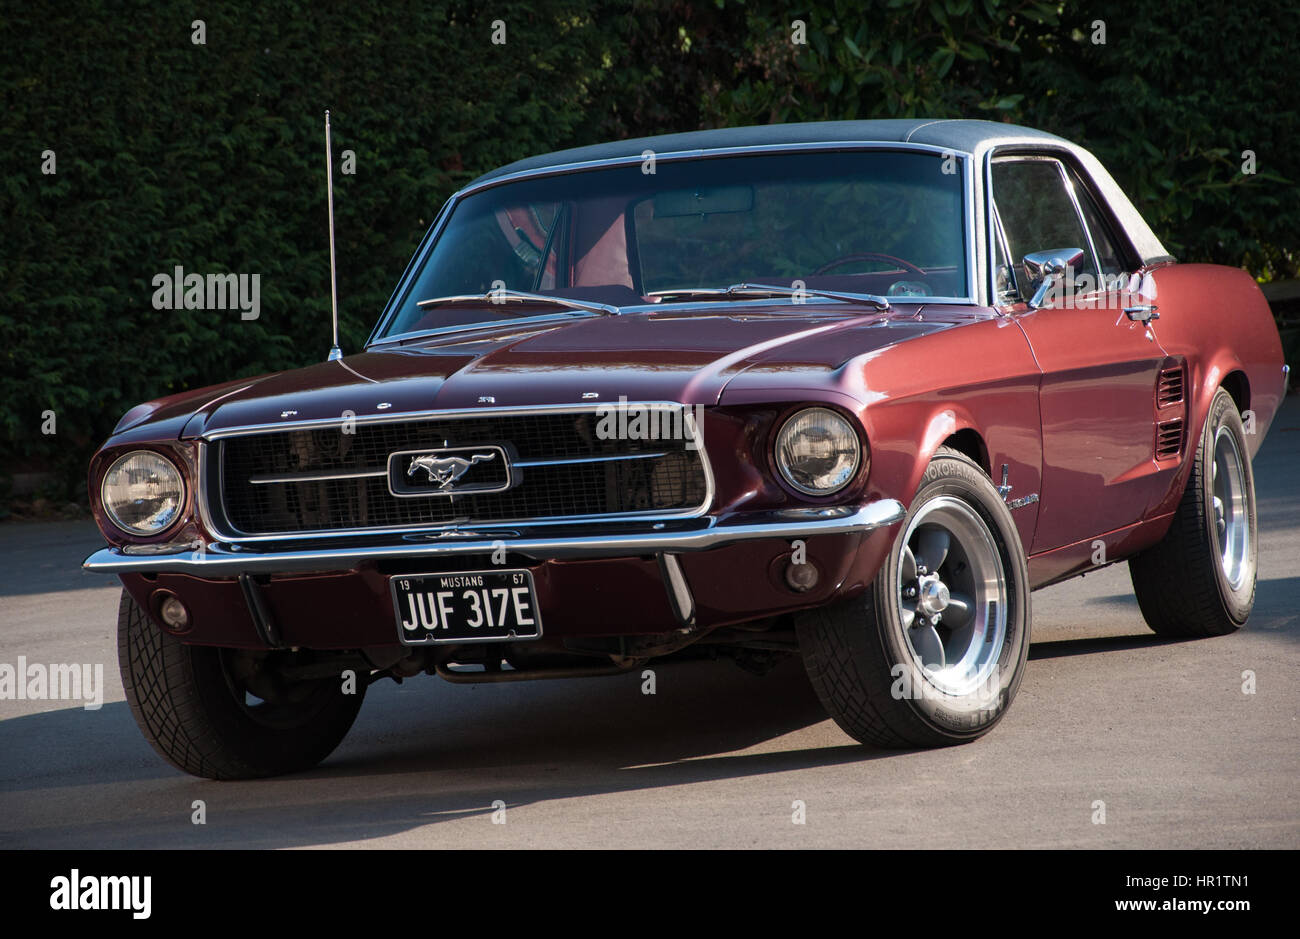 klassische ford mustang coupe 1967 in burgund mit torque. Black Bedroom Furniture Sets. Home Design Ideas